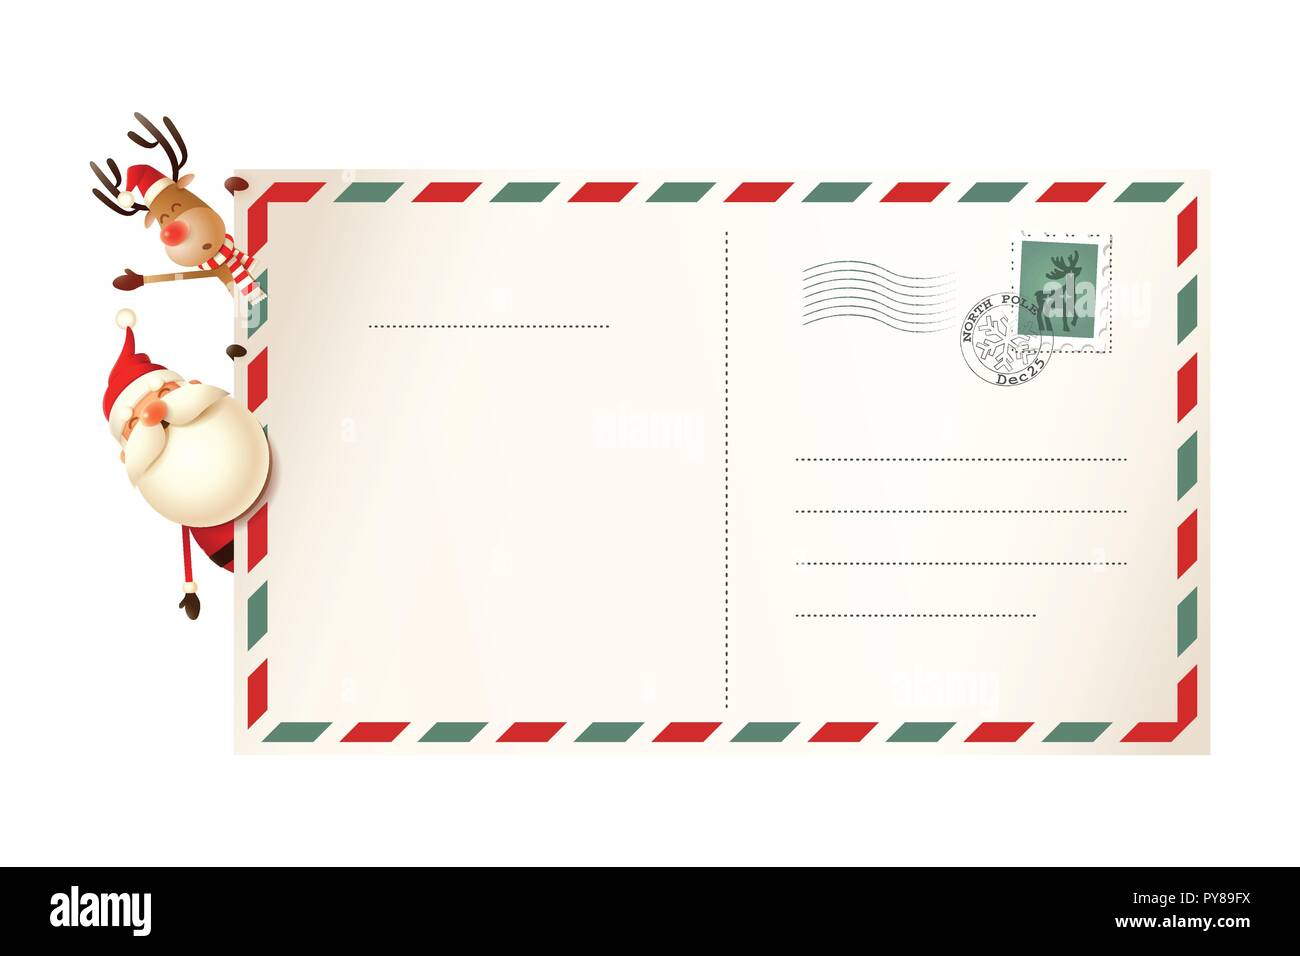 santa mail cut out stock images pictures alamy. Black Bedroom Furniture Sets. Home Design Ideas